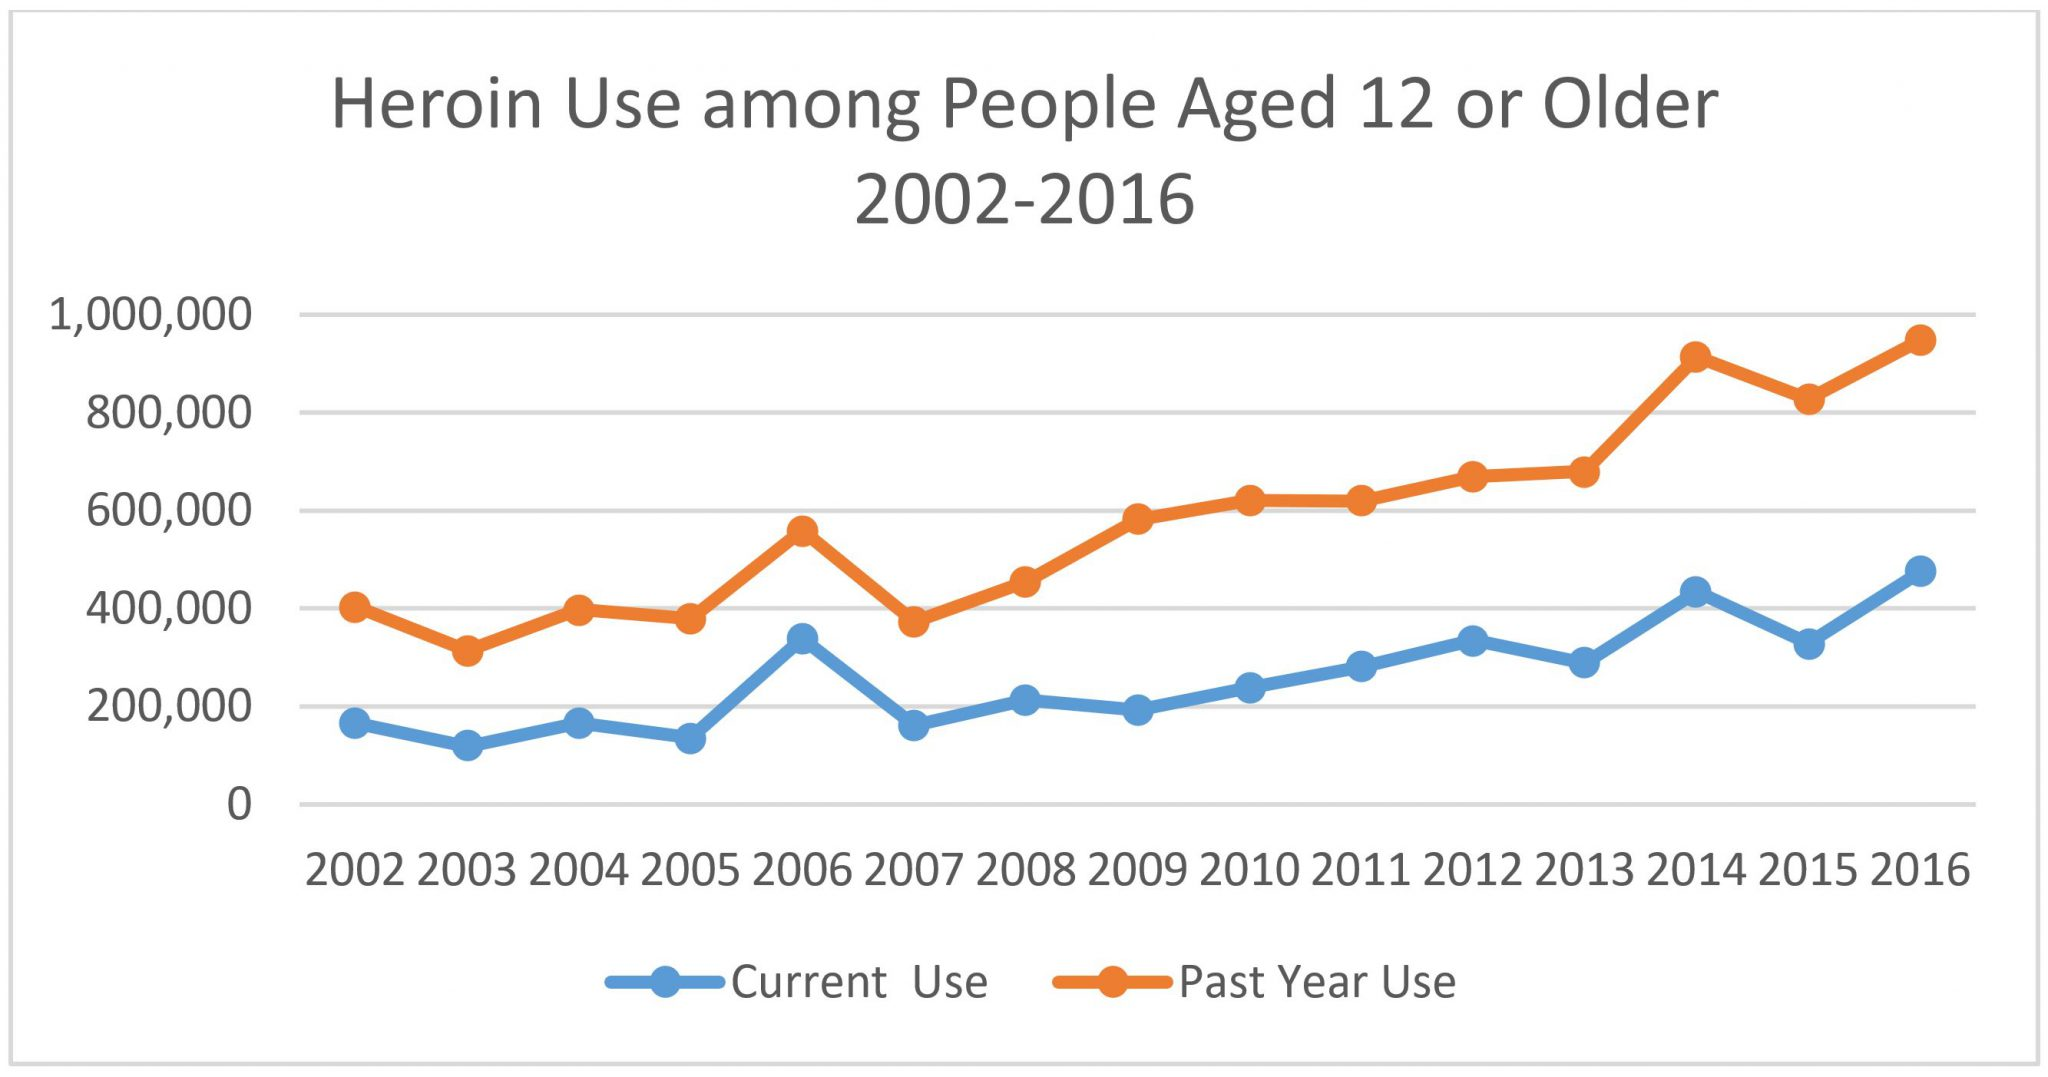 Source: 2016 National Survey on Drug Use and Health.